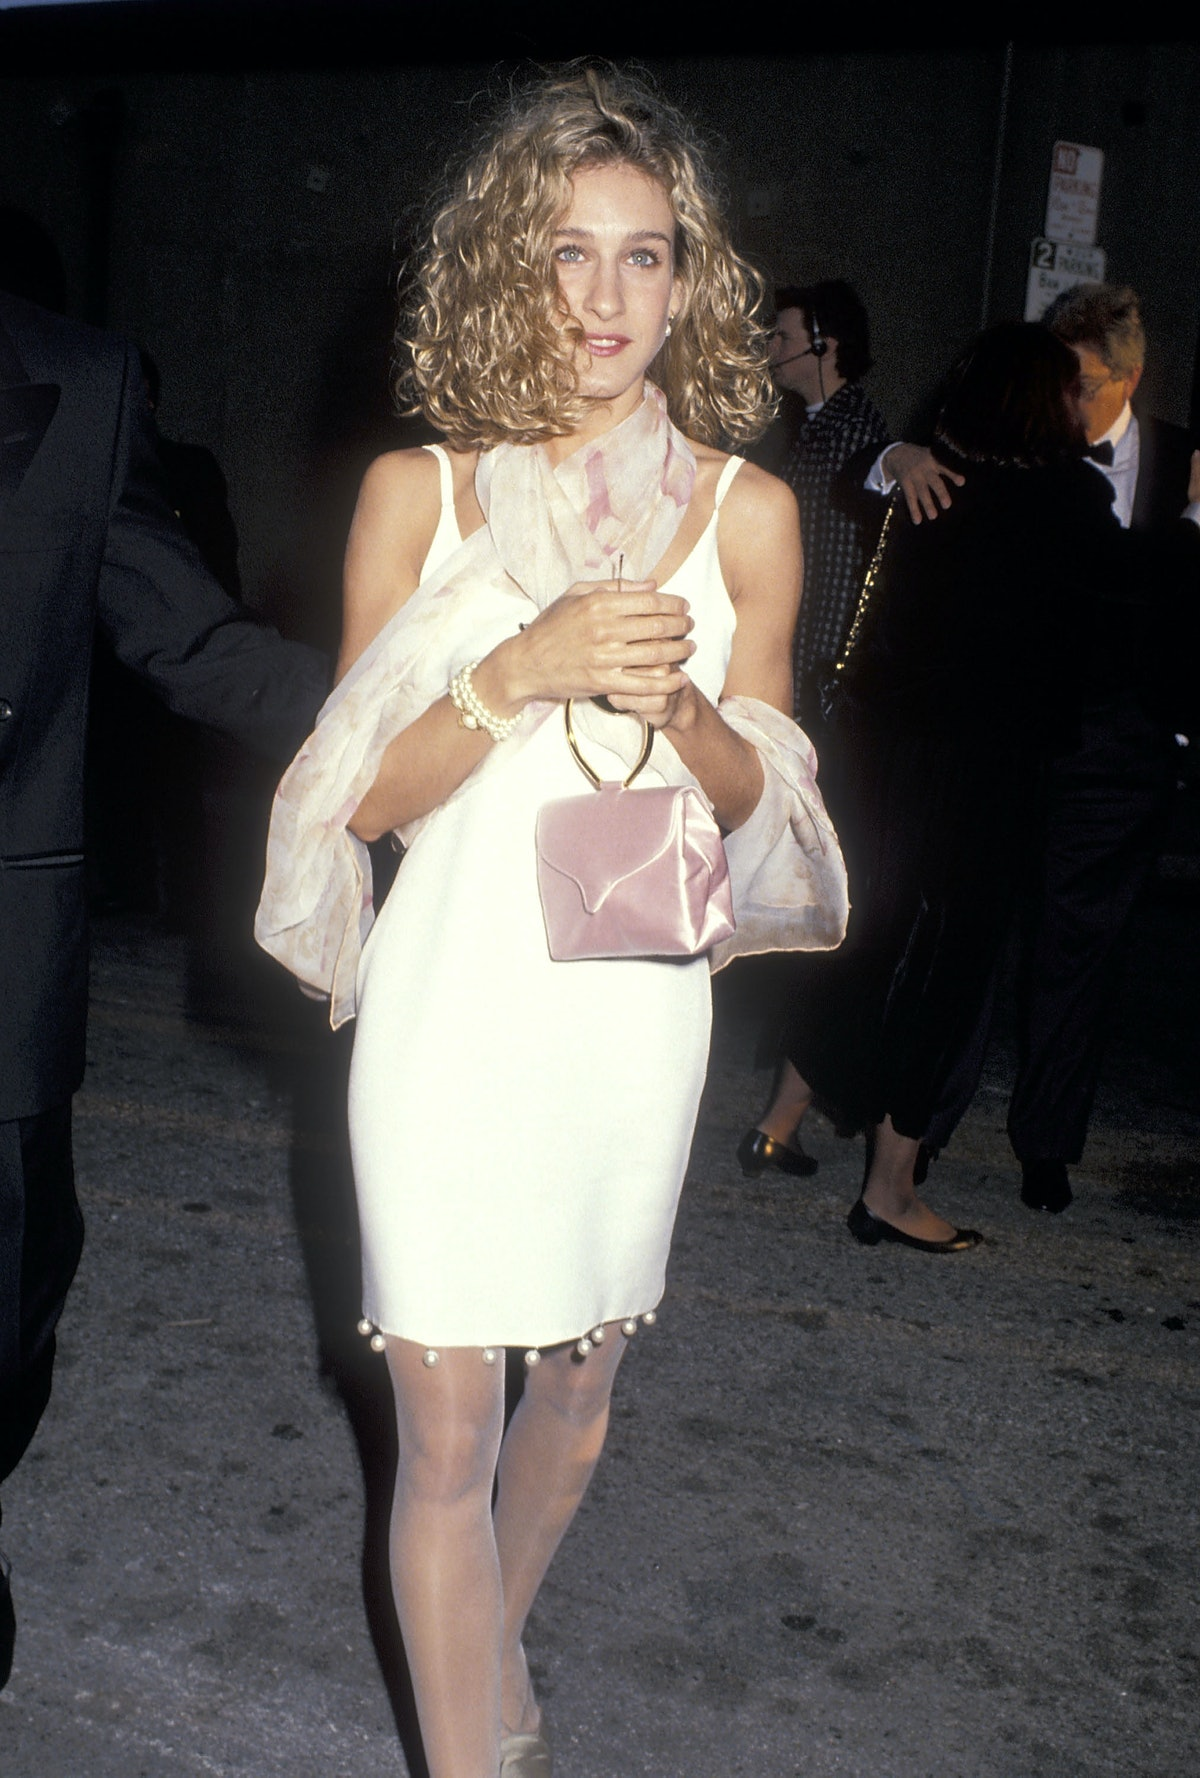 Sarah Jessica Parker with short curly hair